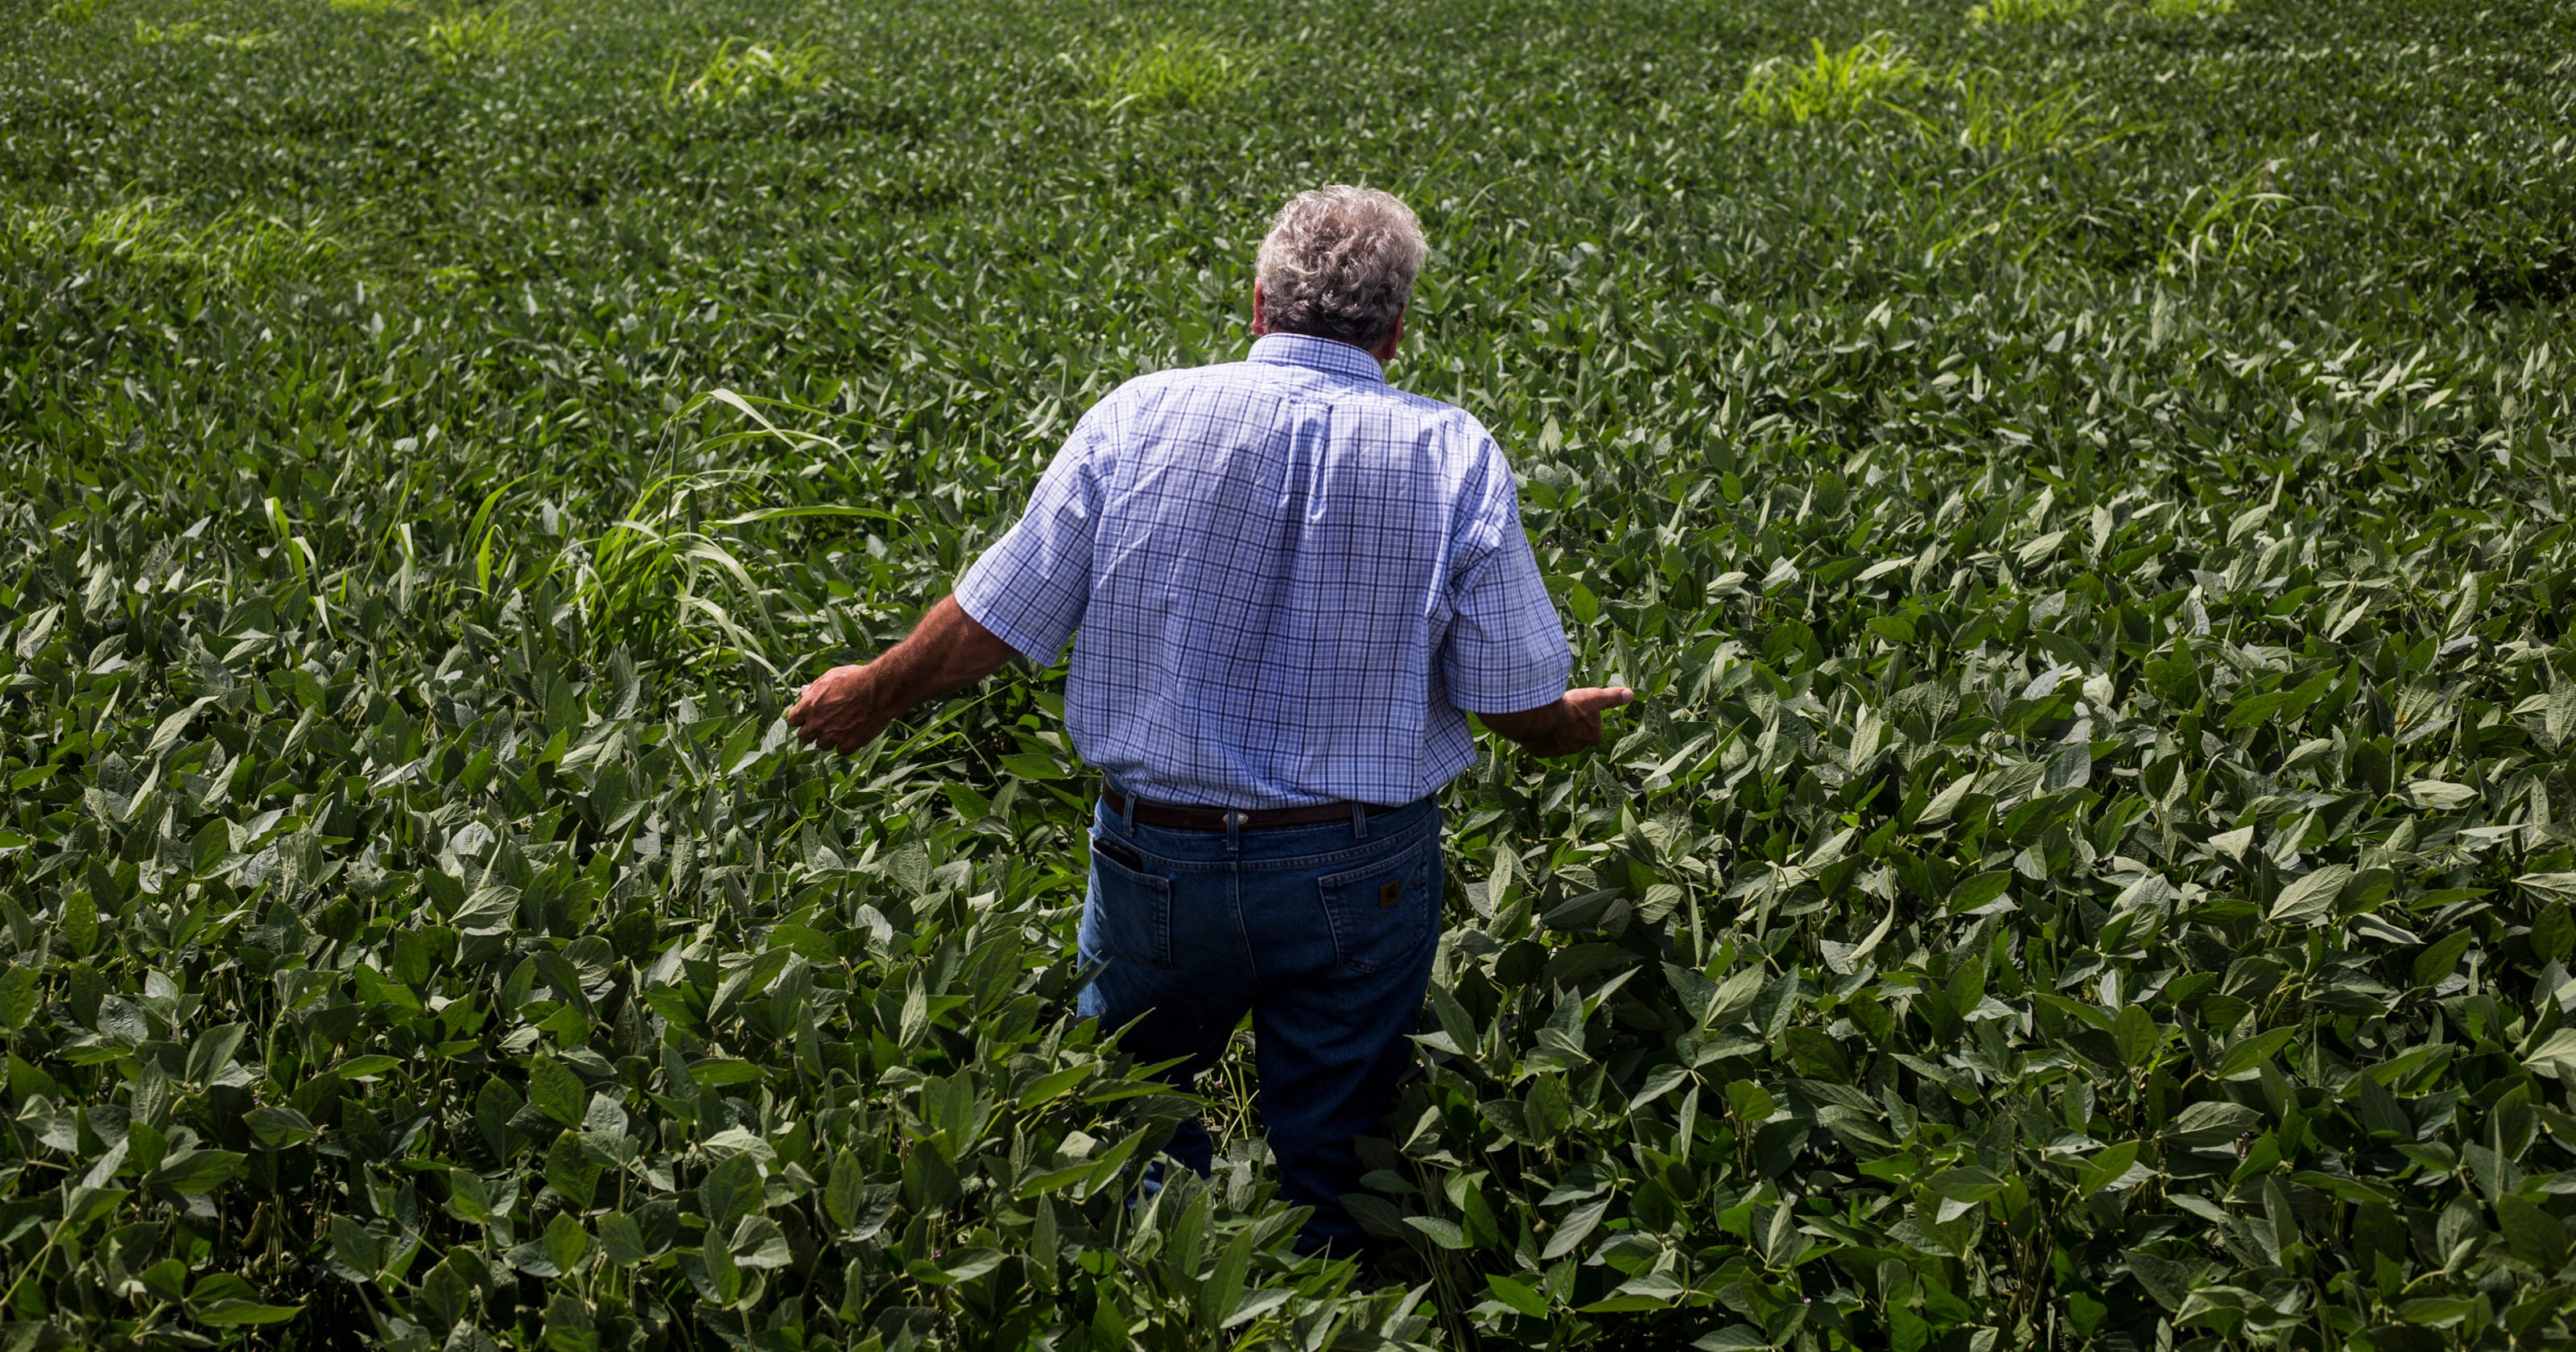 Farmers sue Monsanto, other producers over drifting herbicide